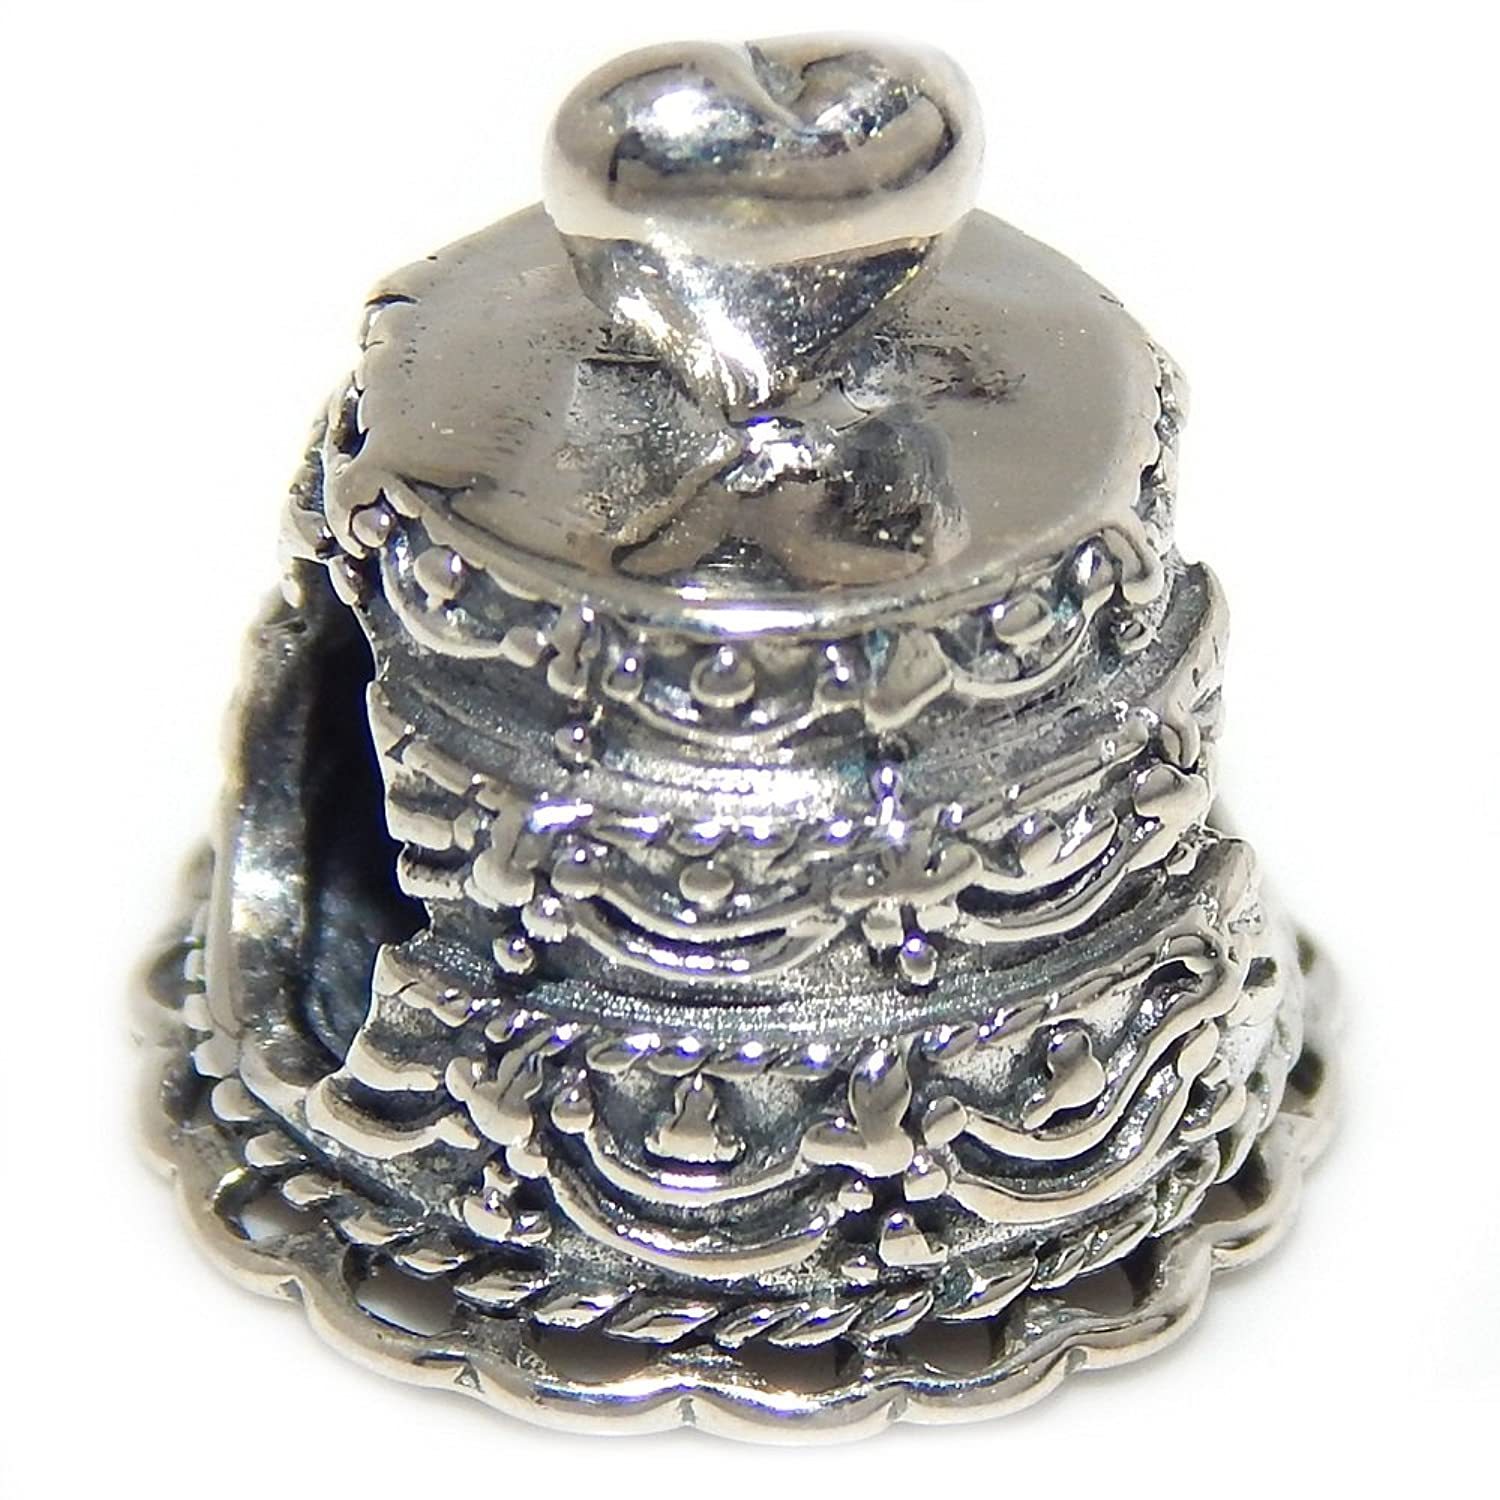 cheap Pro Jewelry 925 Solid Sterling Silver Wedding Cake Charm Bead supplies